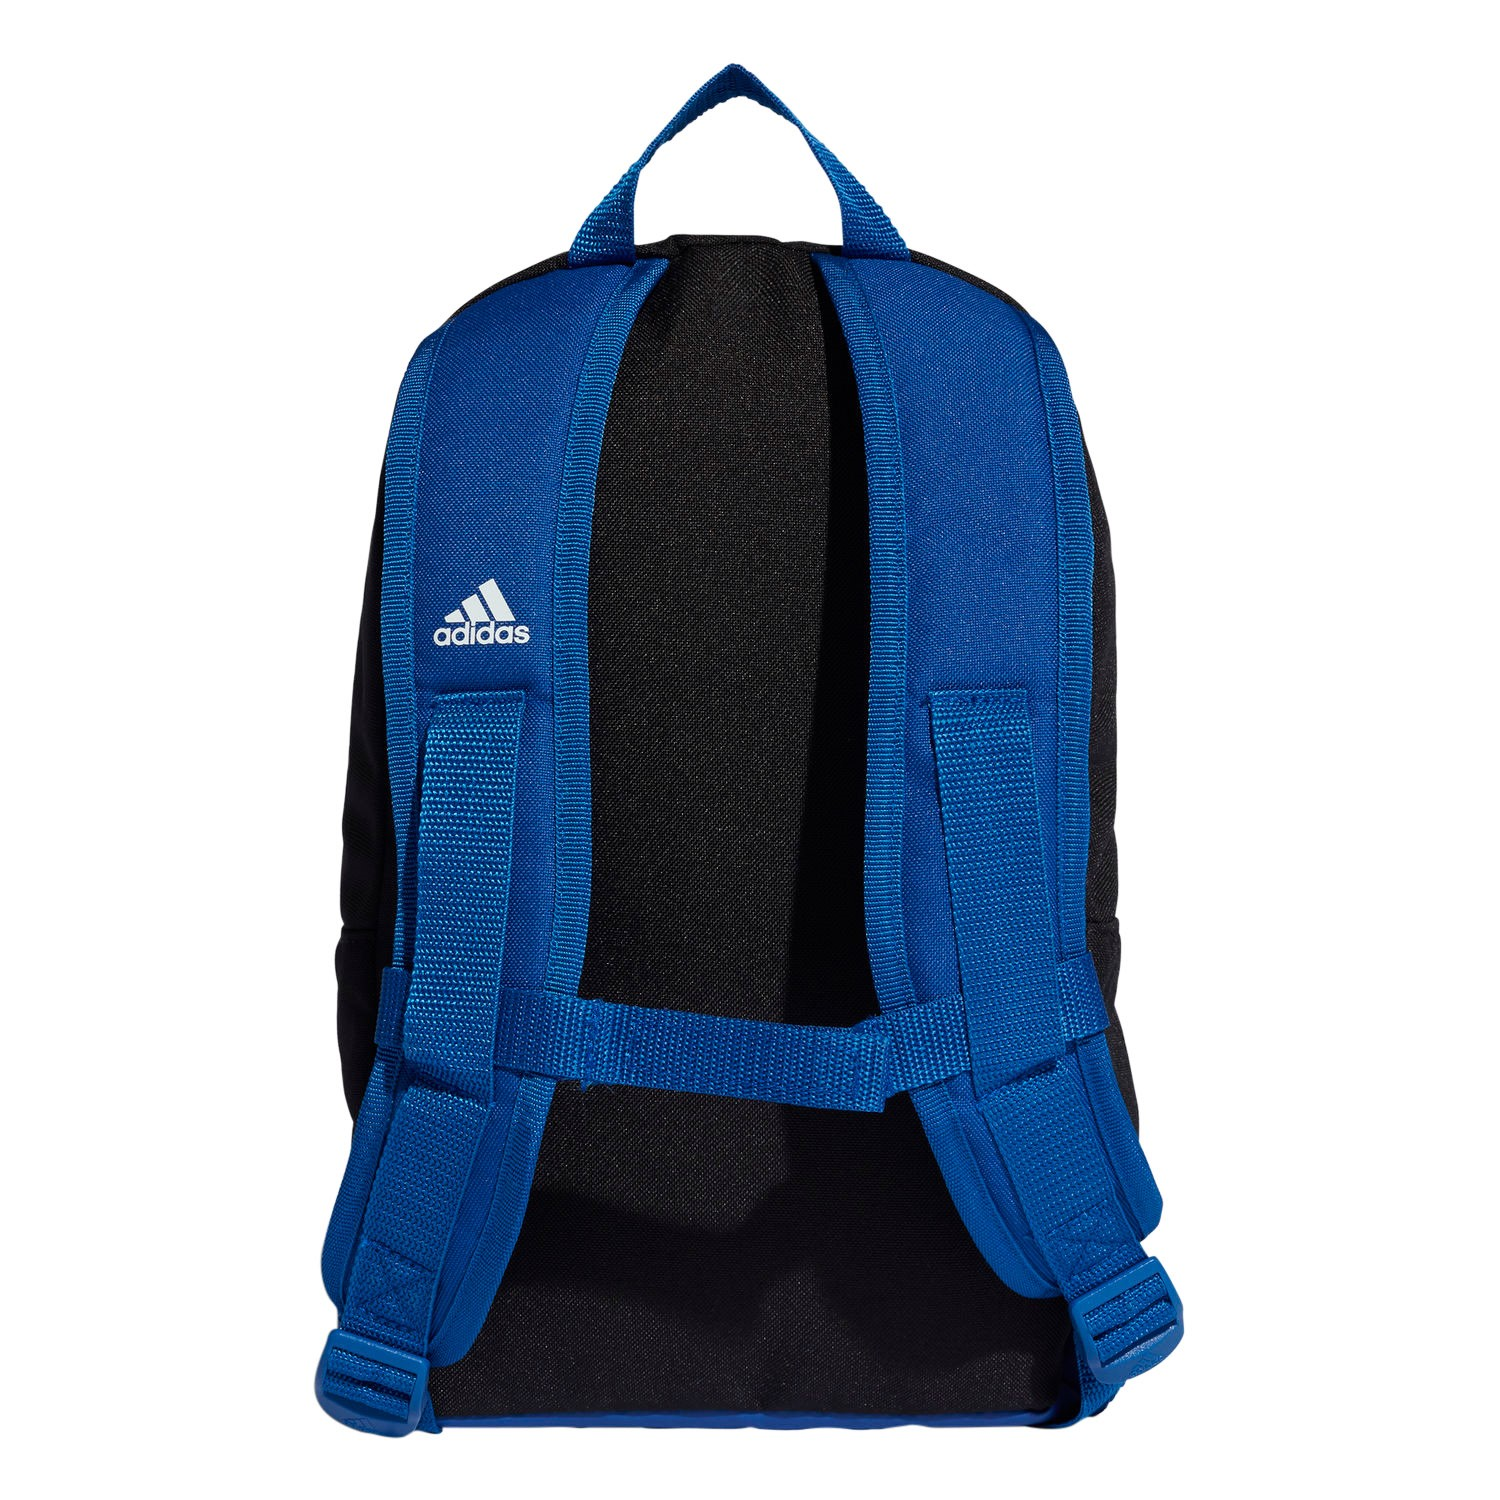 47fde28c7a Adidas Adi Classic 3-Stripes Kids Backpack Bag - Extra Small - Black White